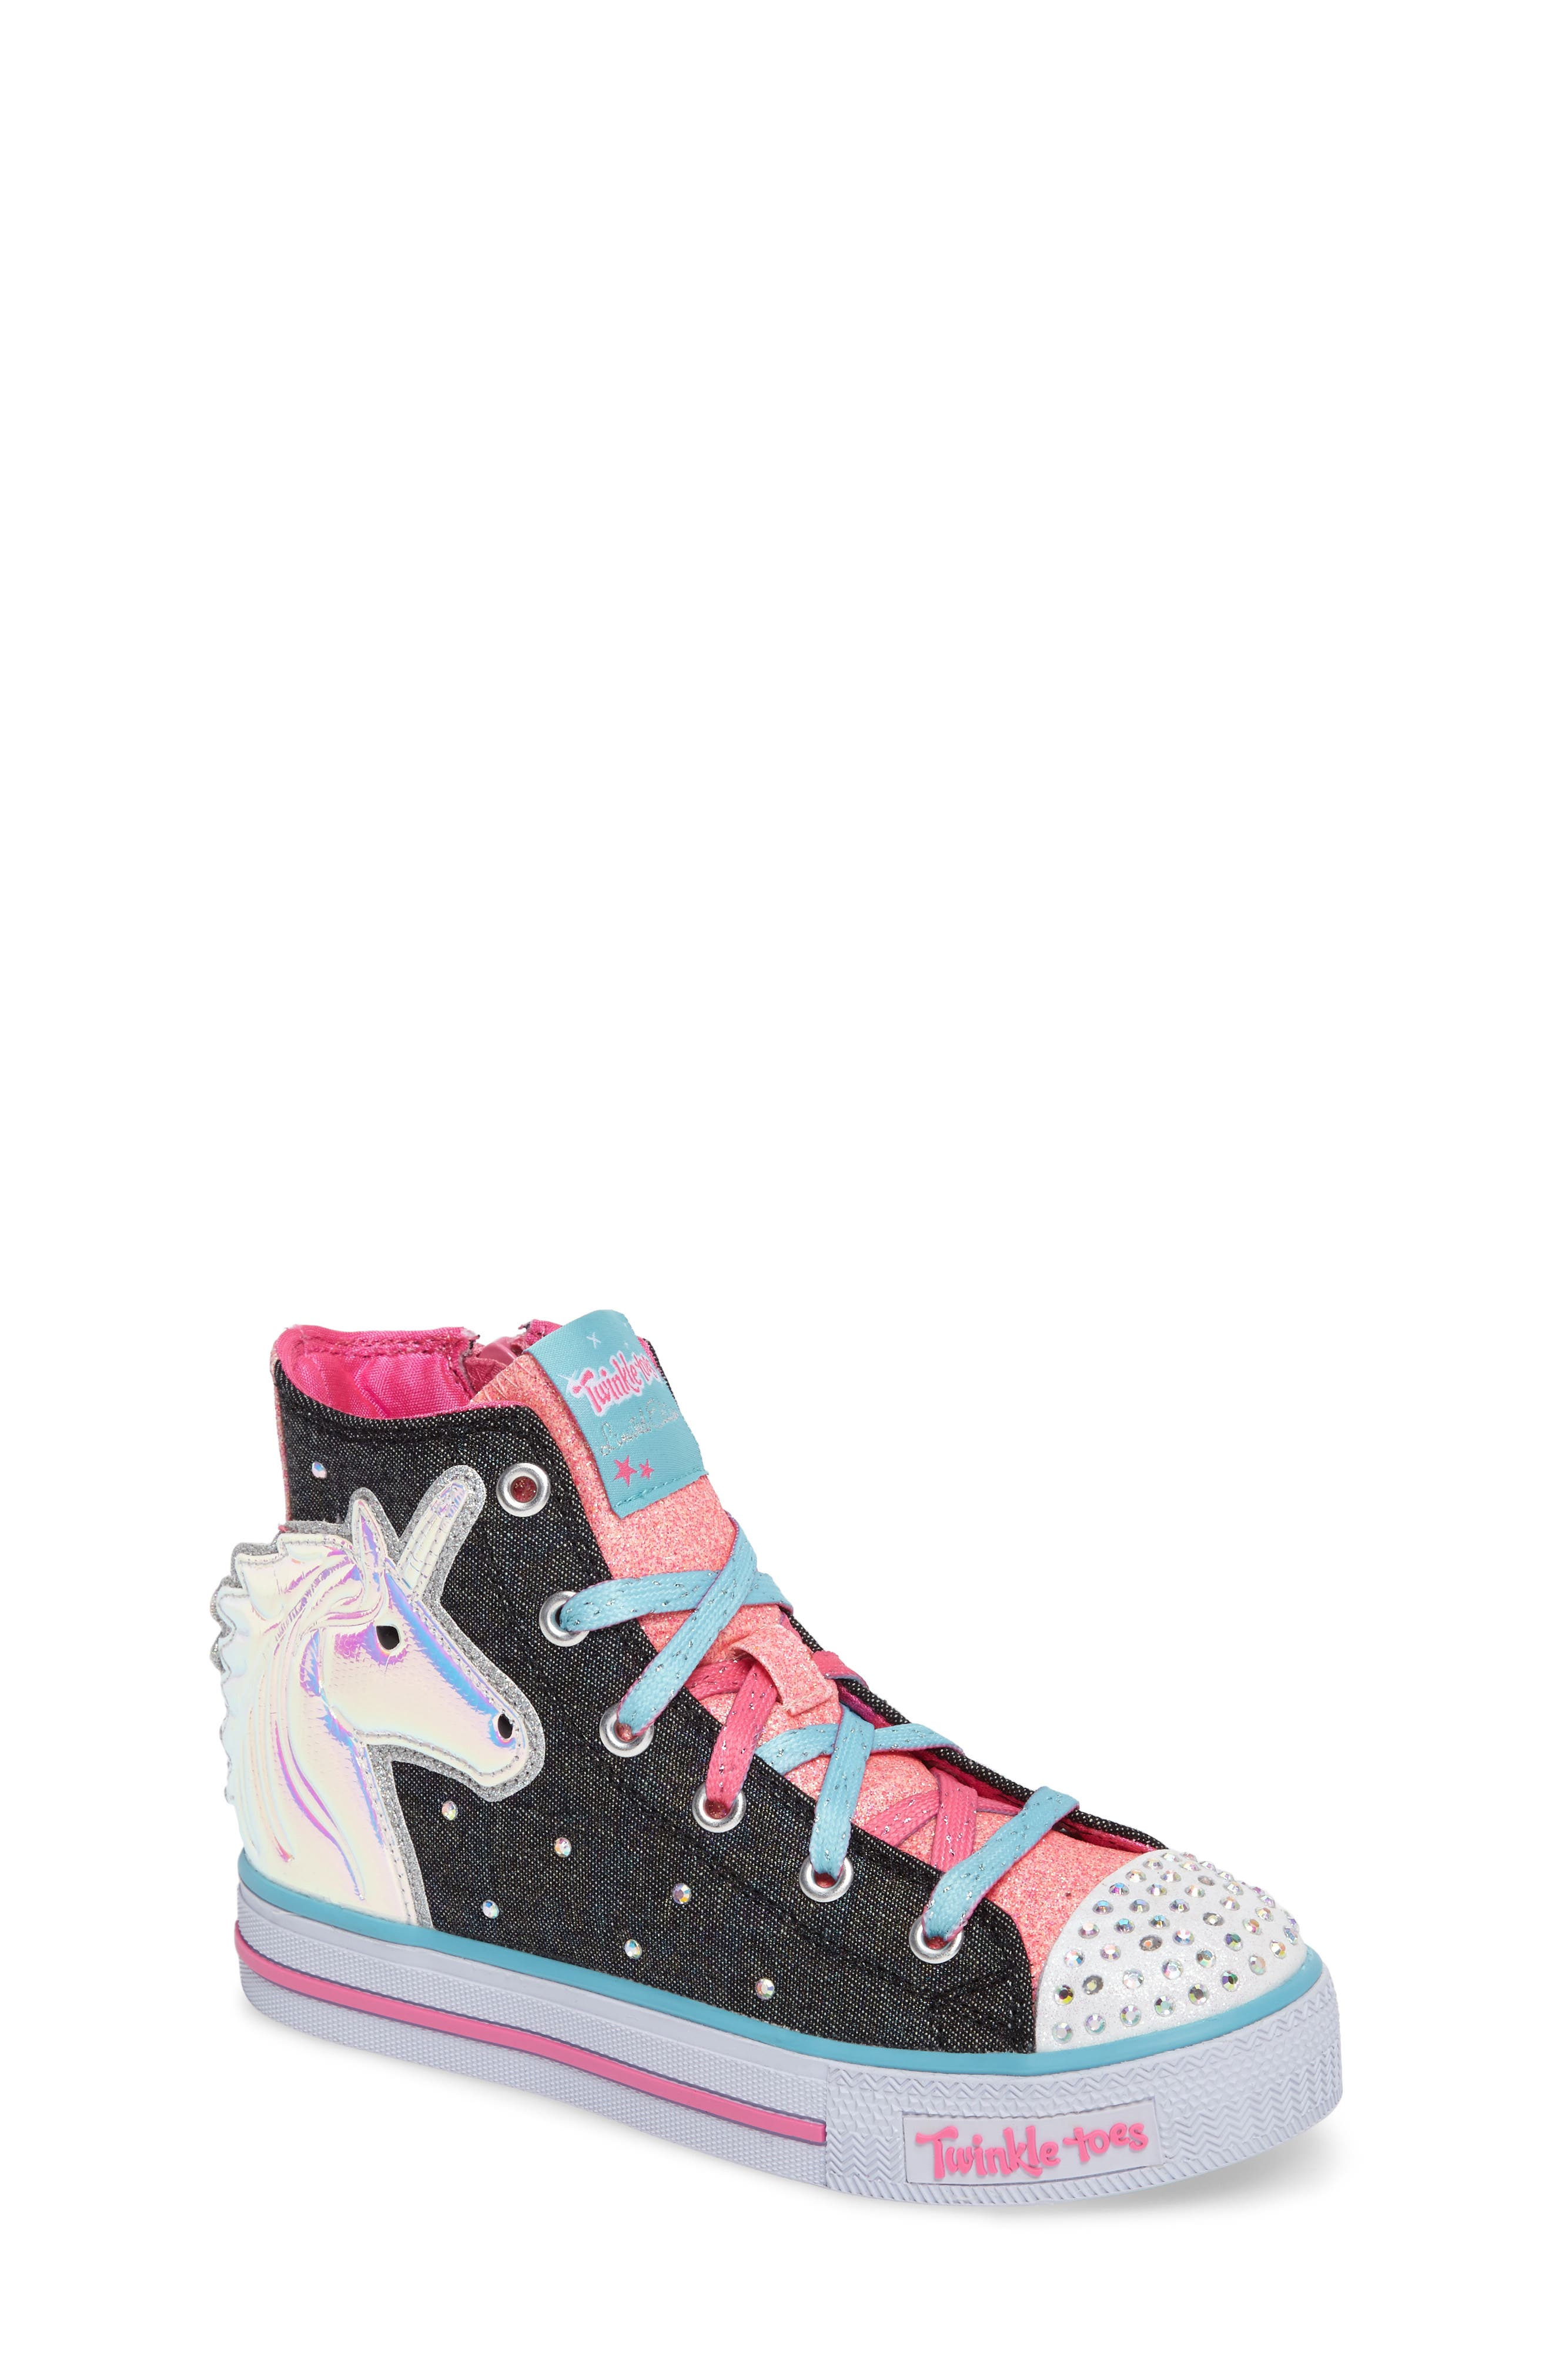 SKECHERS Twinkle Toes Shuffles Prancing Pretty Light-Up Sneaker (Toddler, Little Kid & Big Kid)